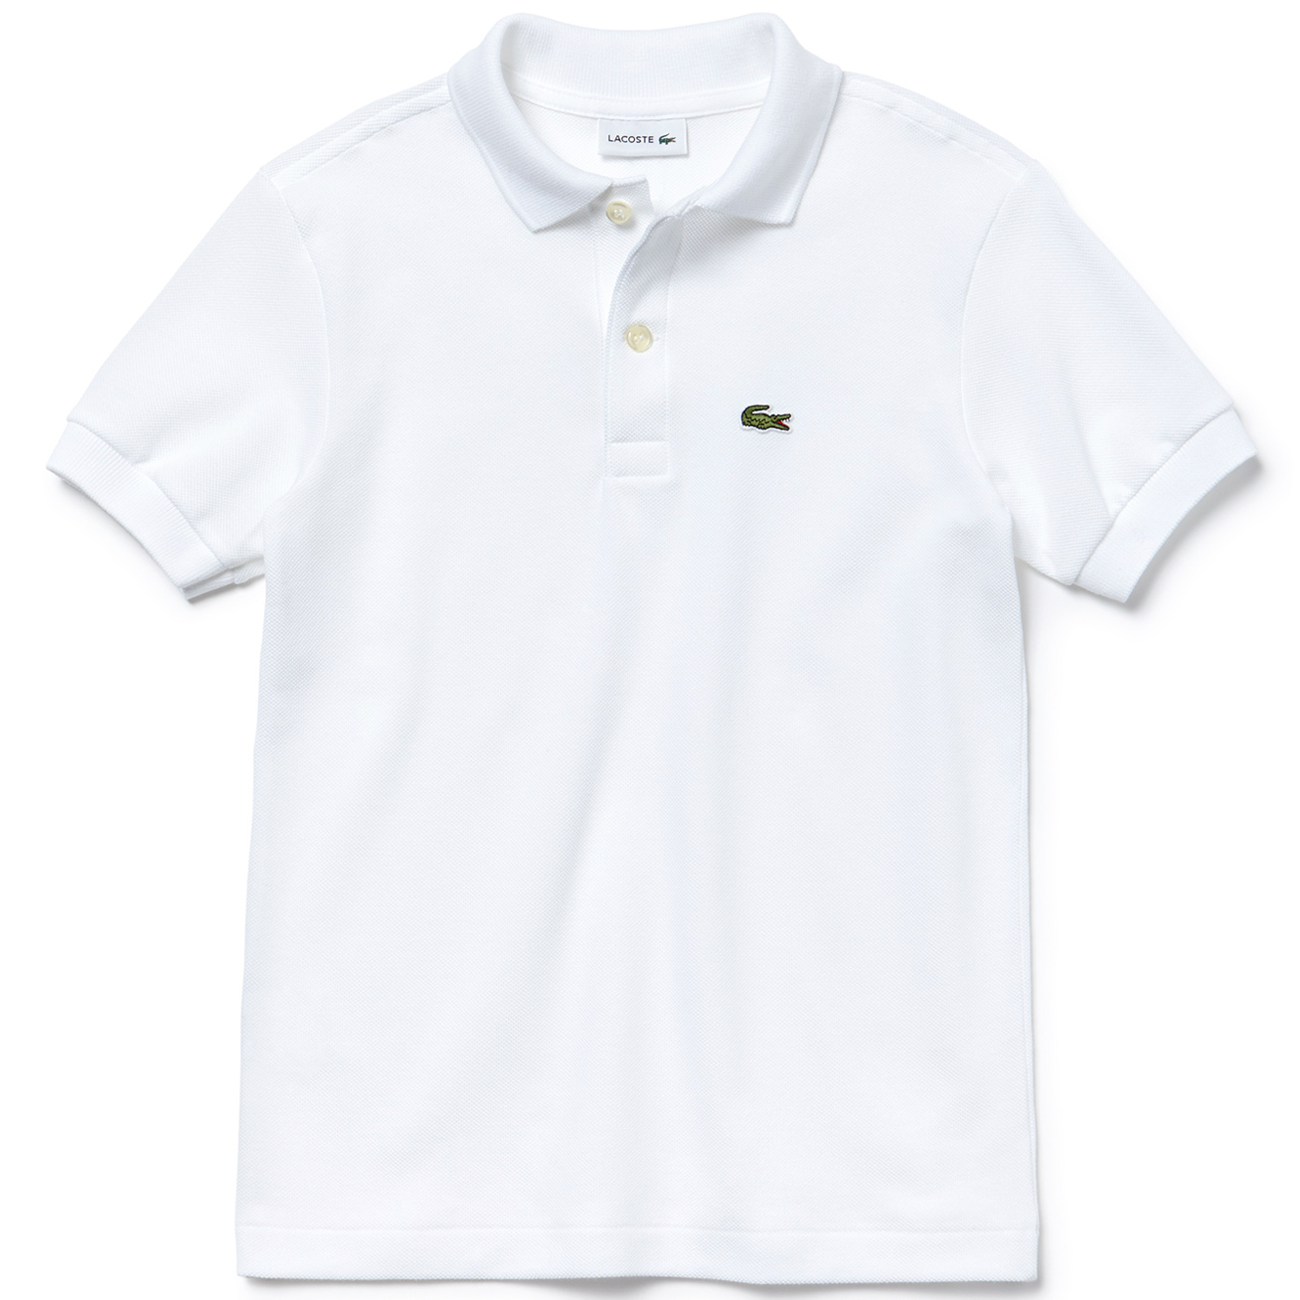 Blanc Bf7gy6yv Polo Ss Lacoste Tee N80Owmyvn